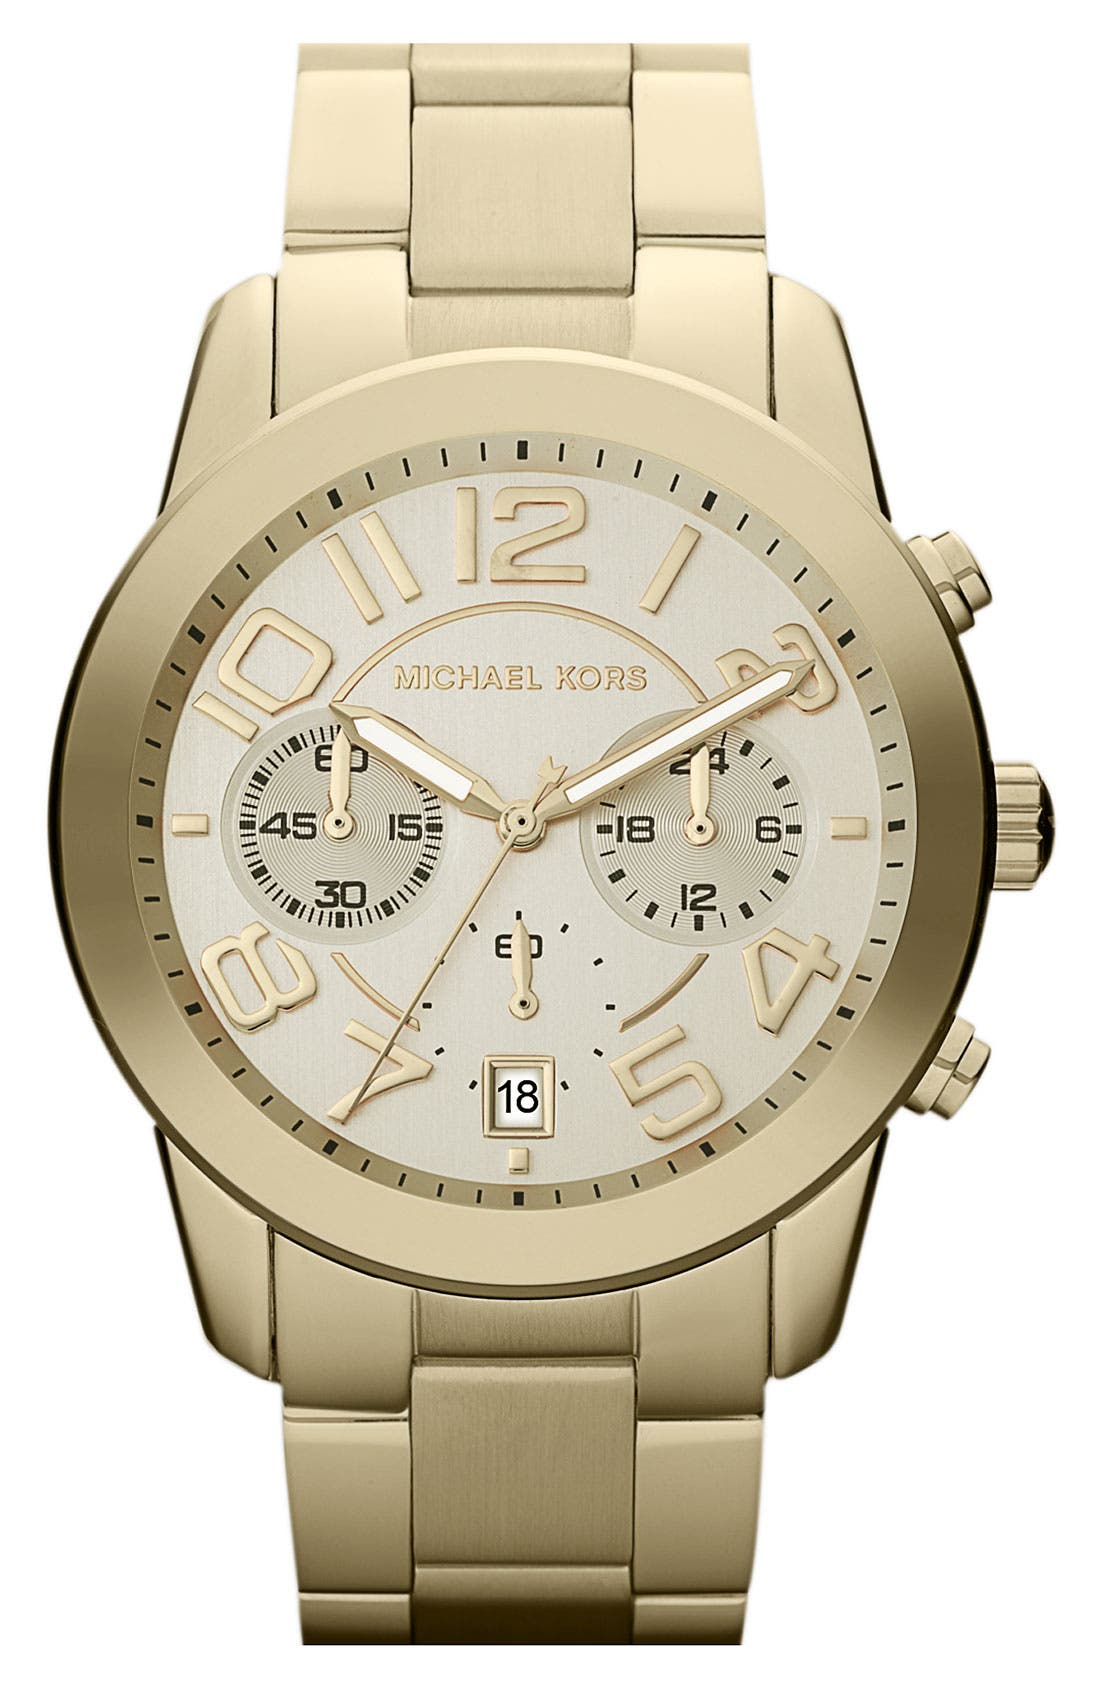 Main Image - Michael Kors 'Mercer' Chronograph Bracelet Watch, 41mm